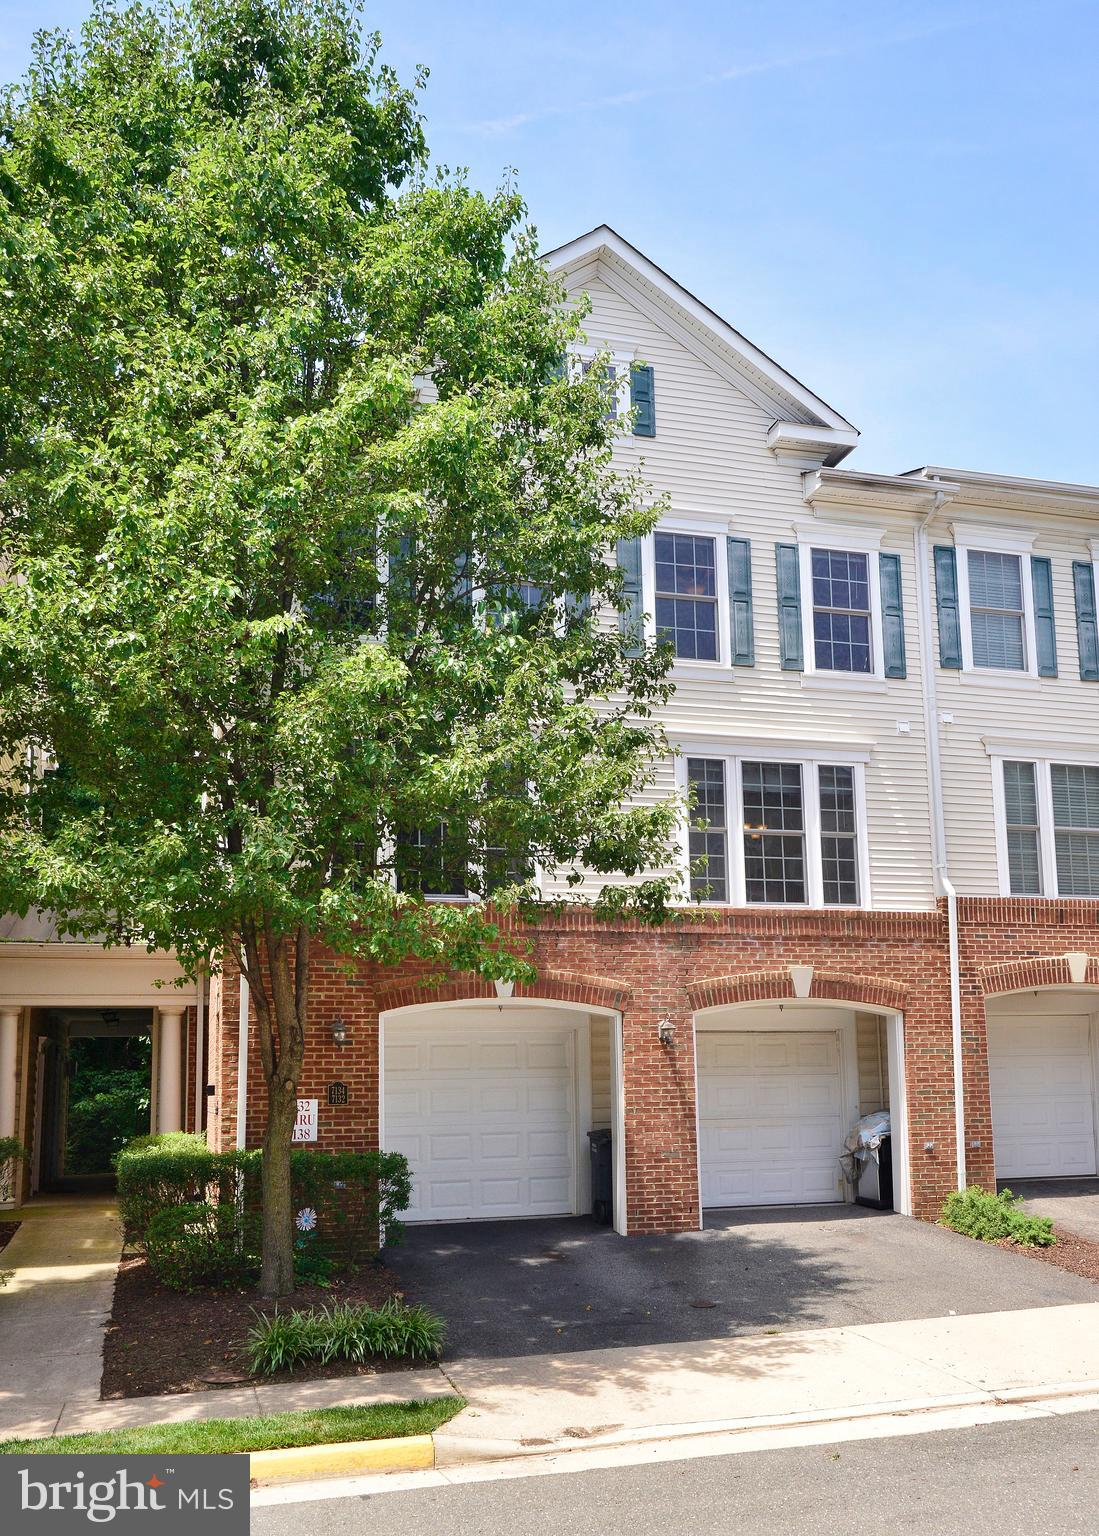 Awesome 3BR/2.5BA End Unit Townhouse w/ Garage! Open floorplan w/ high ceilings & gorgeous hardwoods on main lvl. Kit w/ 42in maple cabs, granite, SS applncs! Crown moulding, chair rails, wainscoting. Recent flooring & paint. Great location: 2.5 miles to Metro. So convenient to shopping,Ft Belvoir, Old Town, Pentagon, Future HQ2, DC! Nature lovers: just 4 blocks to Huntley Meadows Park!